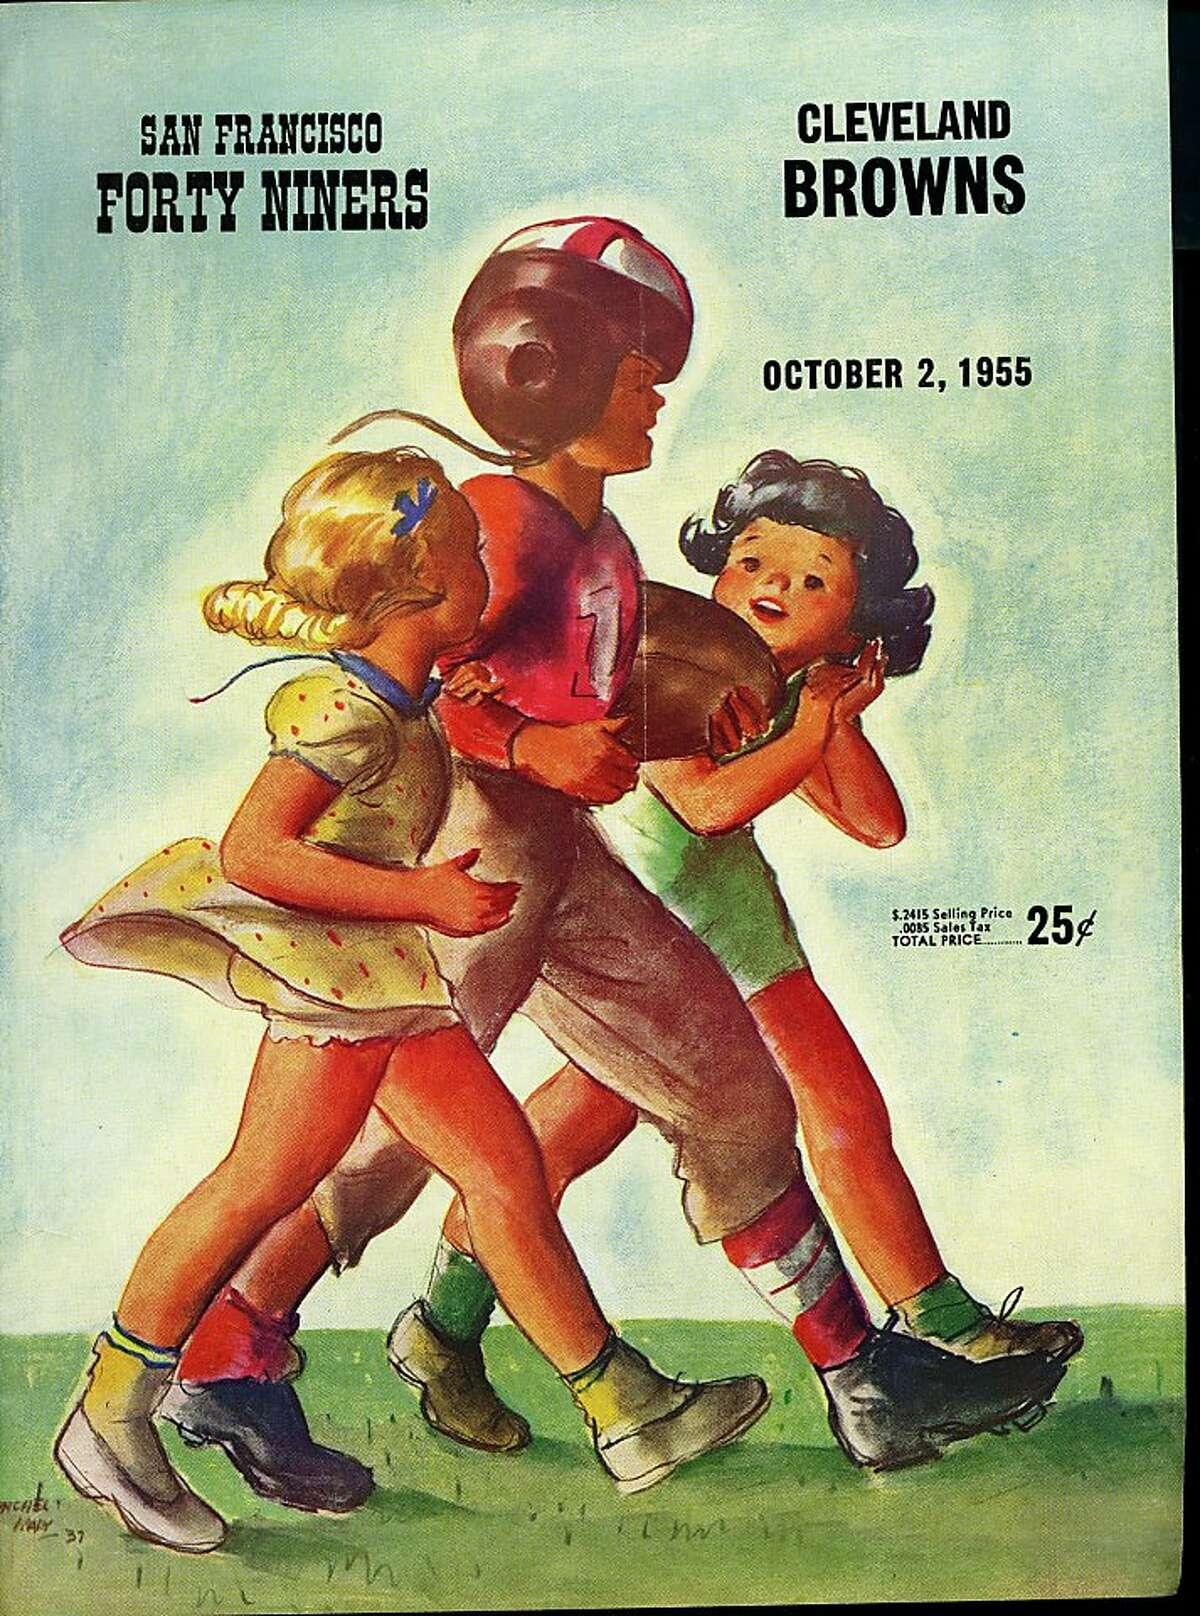 San Francisco 49ers official game programs 1955 courtesy Don Figone